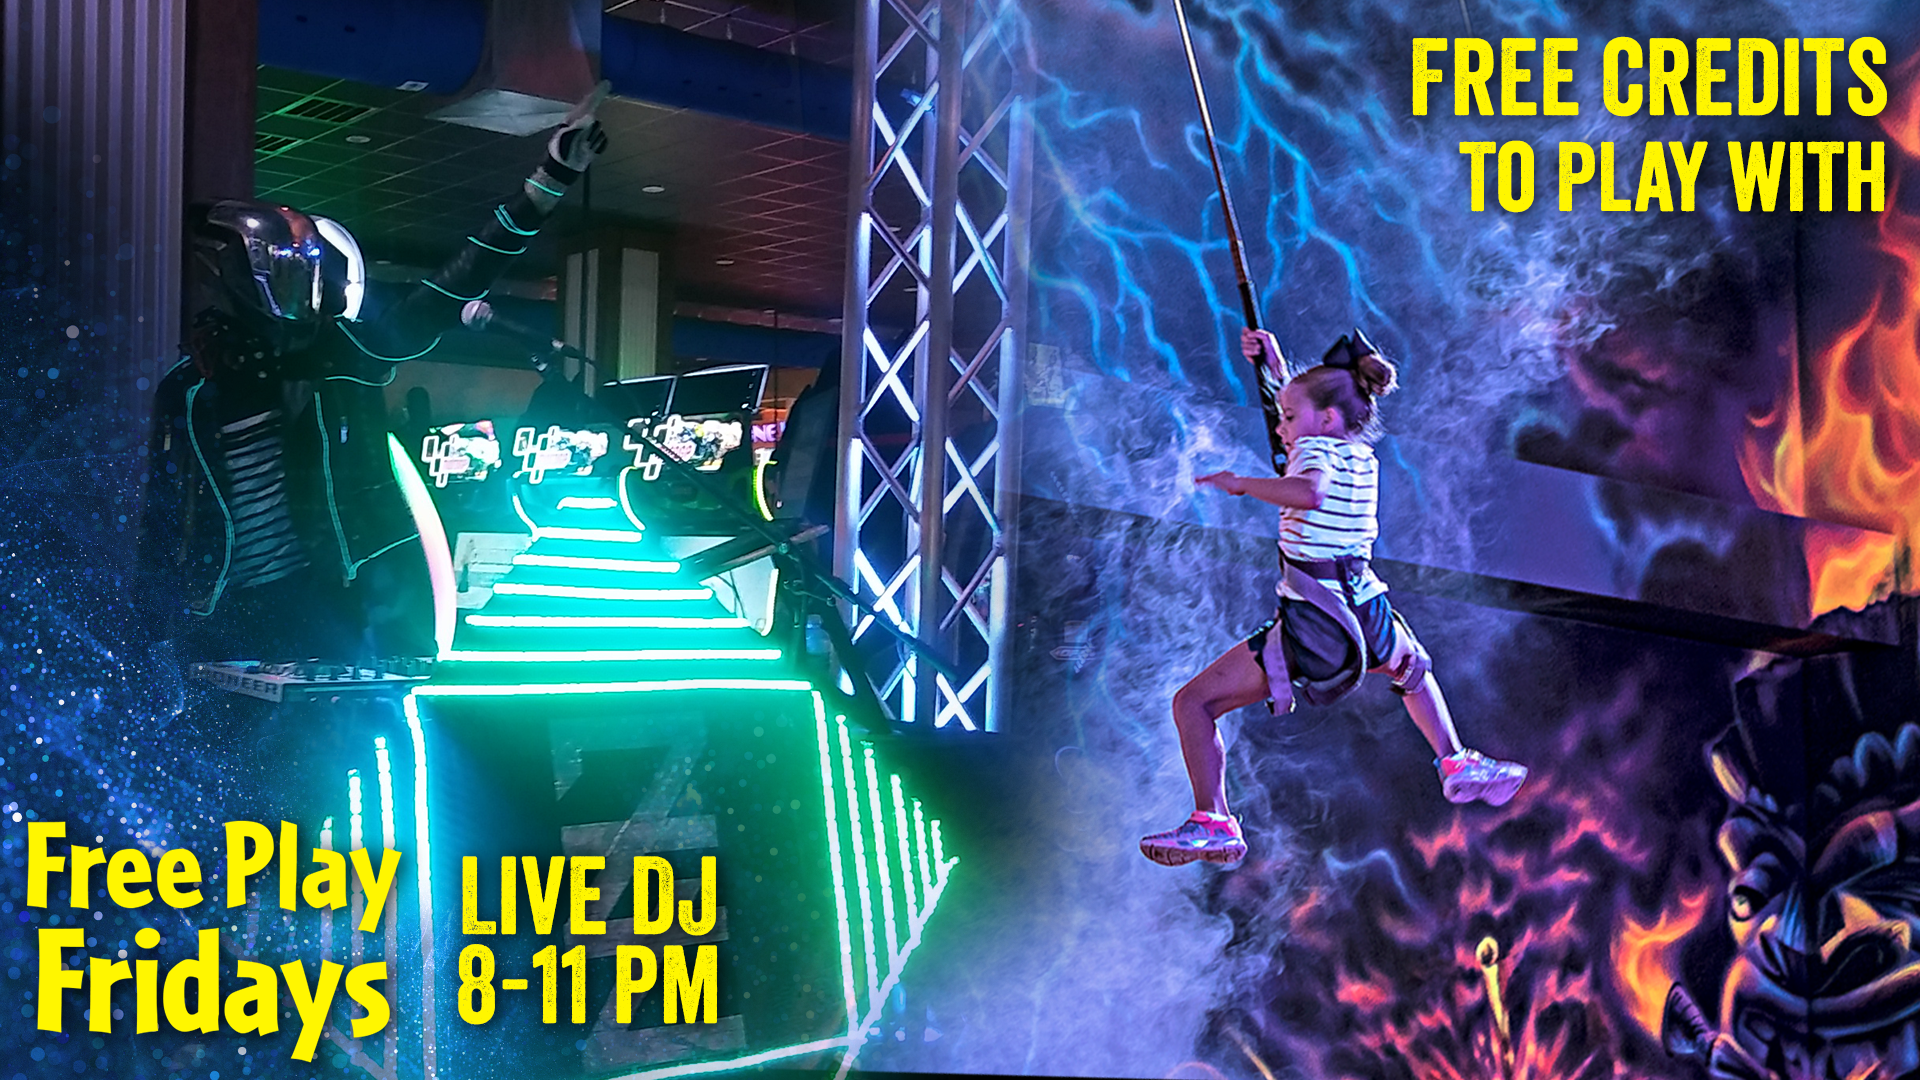 Free play fridays at Margaritaville. Free credits to play with and a live dj dance party